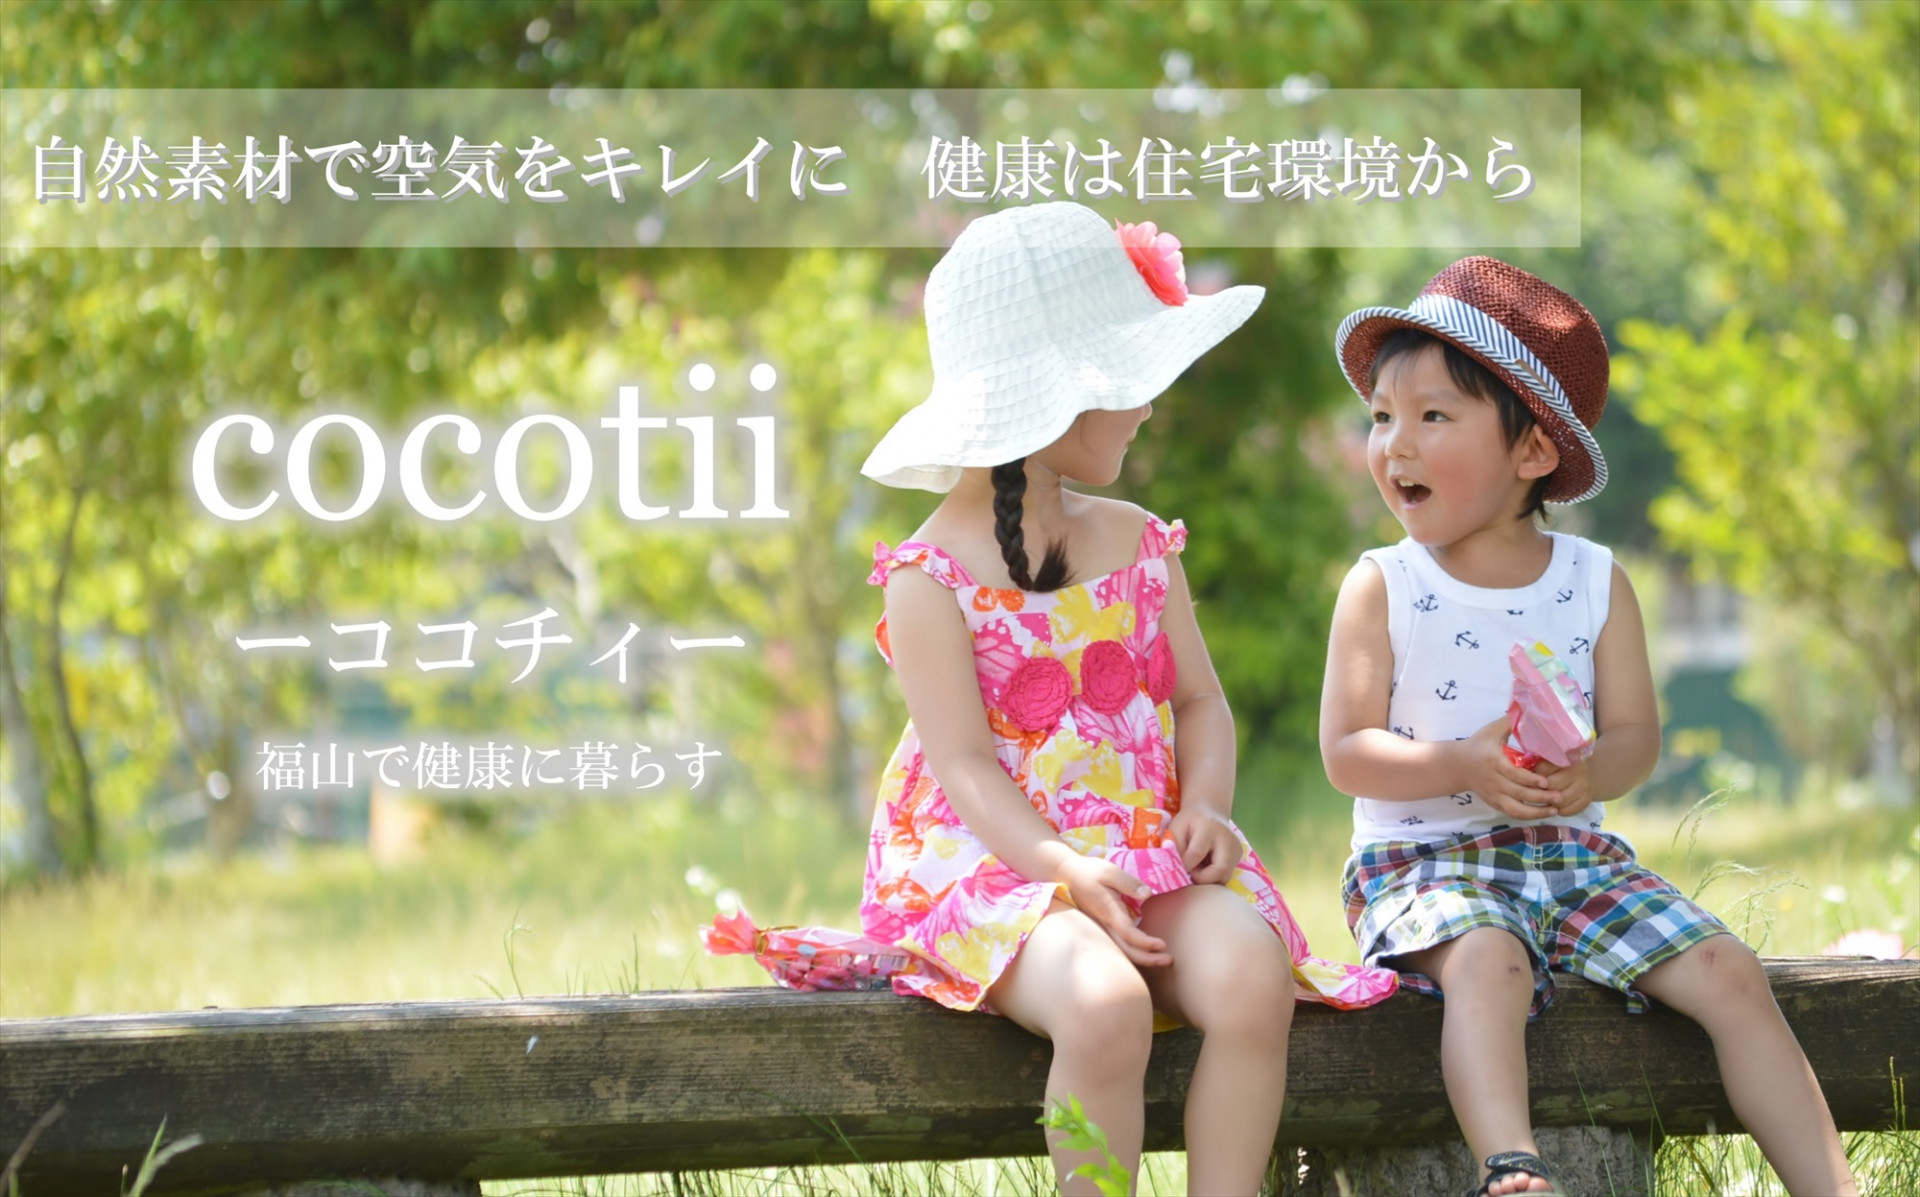 cocotii~ココチィ~